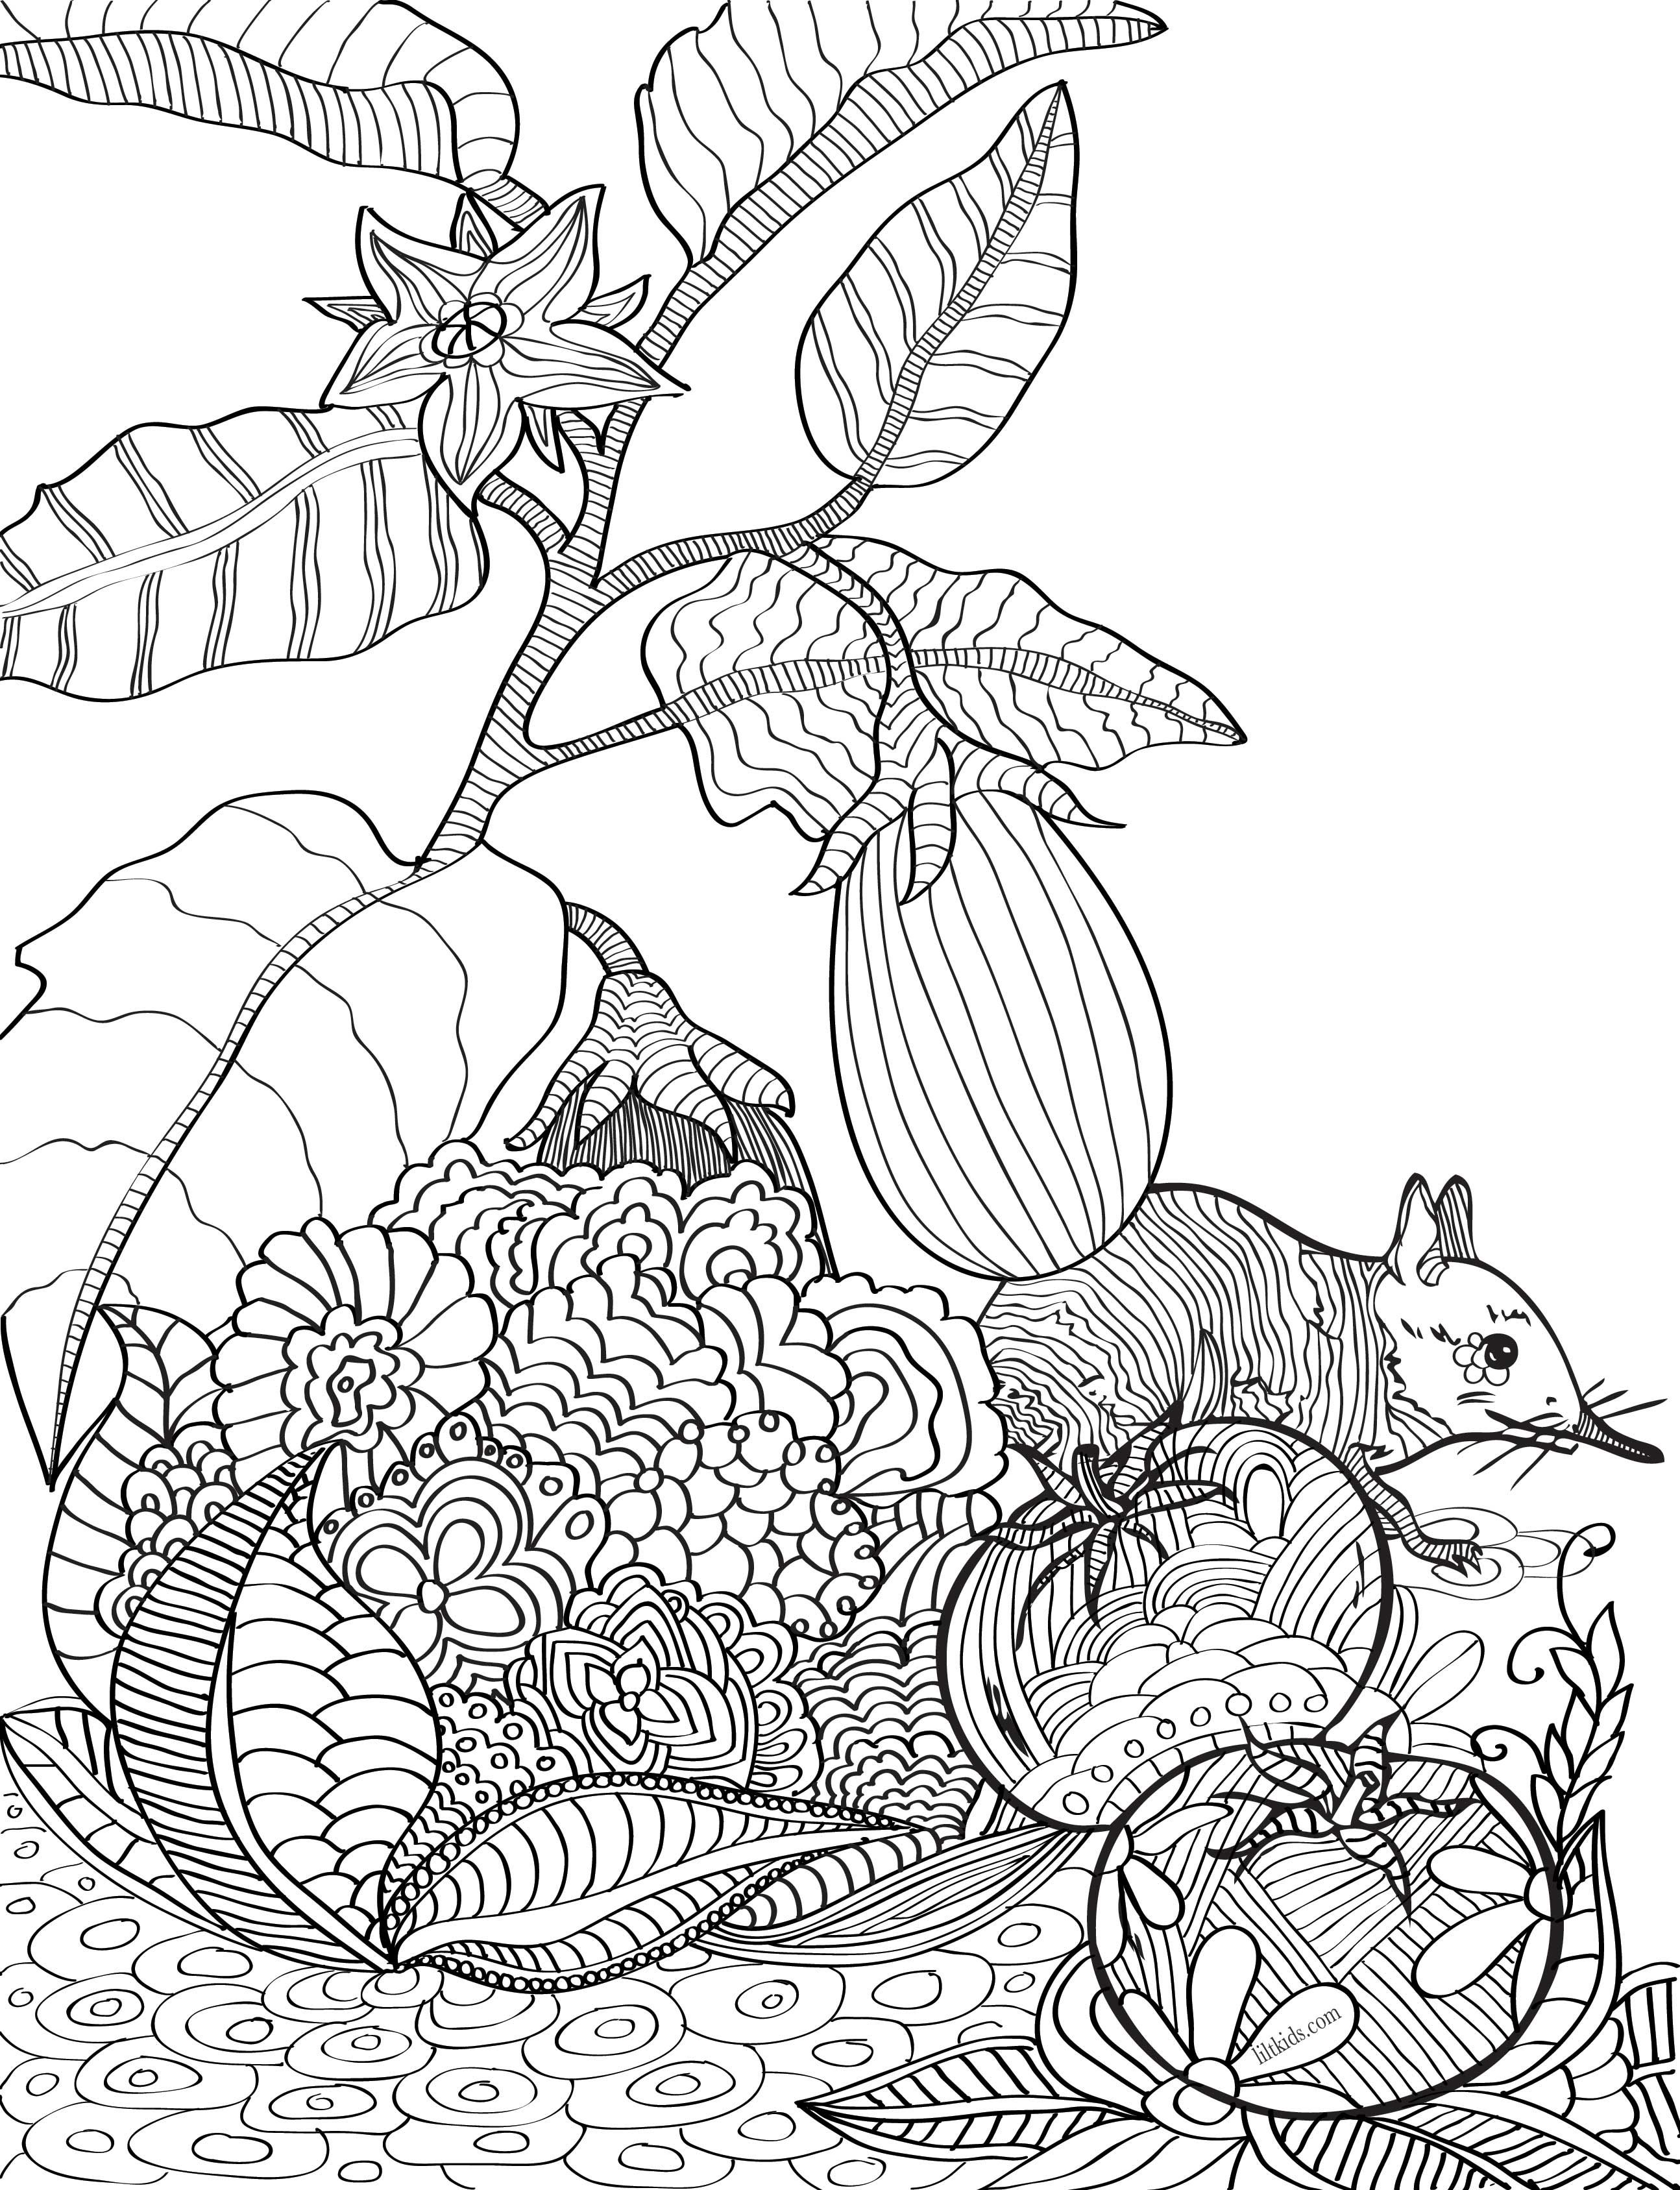 Free garden adult coloring book image from LiltKids